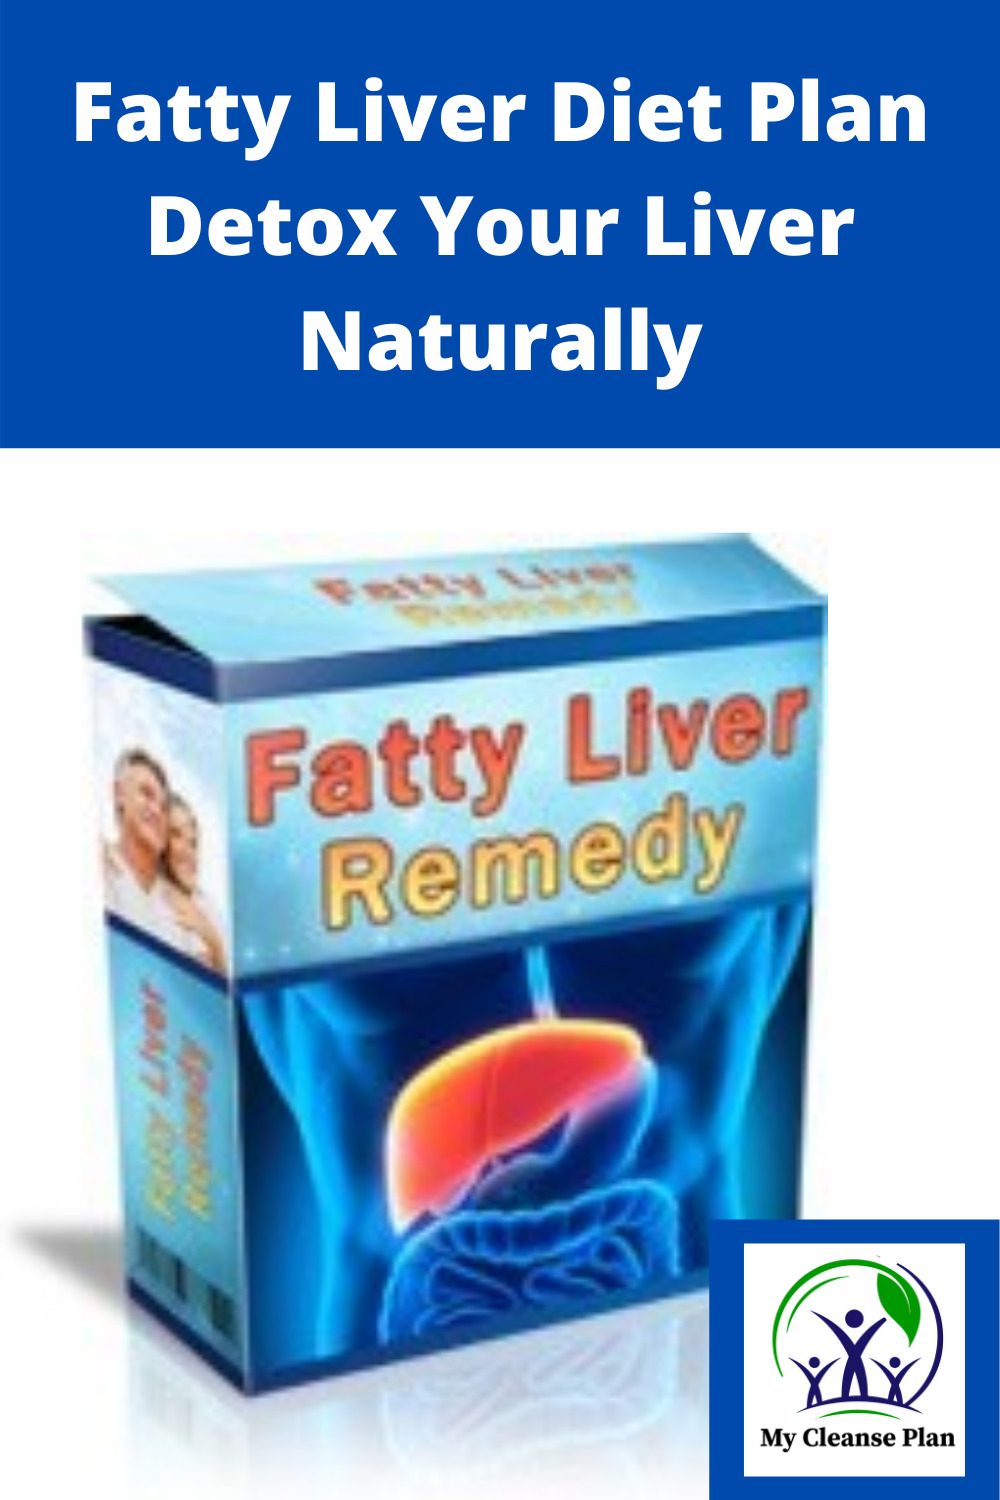 Fatty Liver Diet Plan - Detox Your Liver Naturally